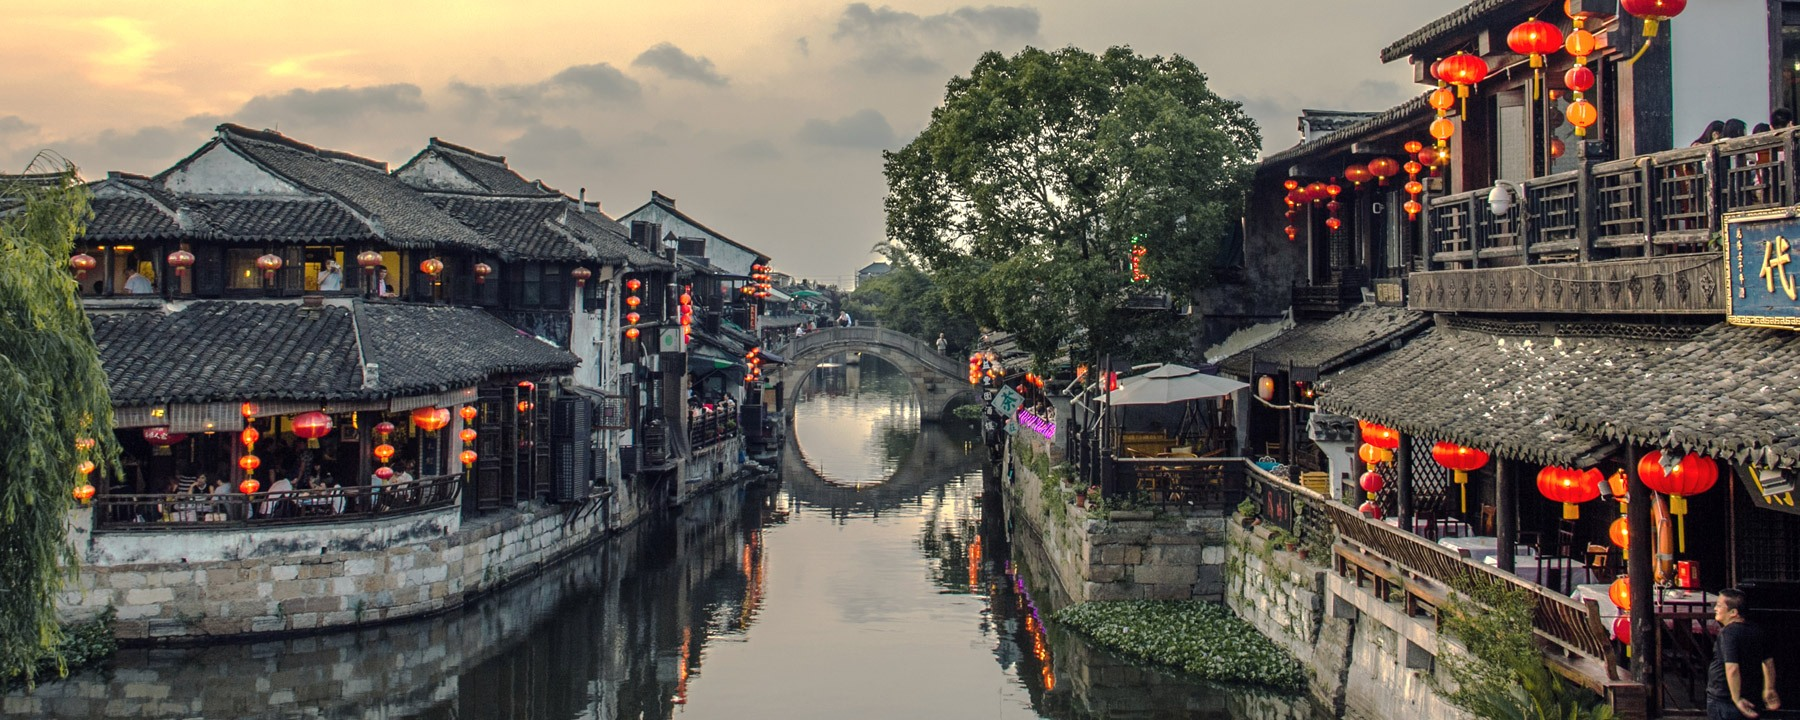 Zhouzhuang - China's No.1 Water Town